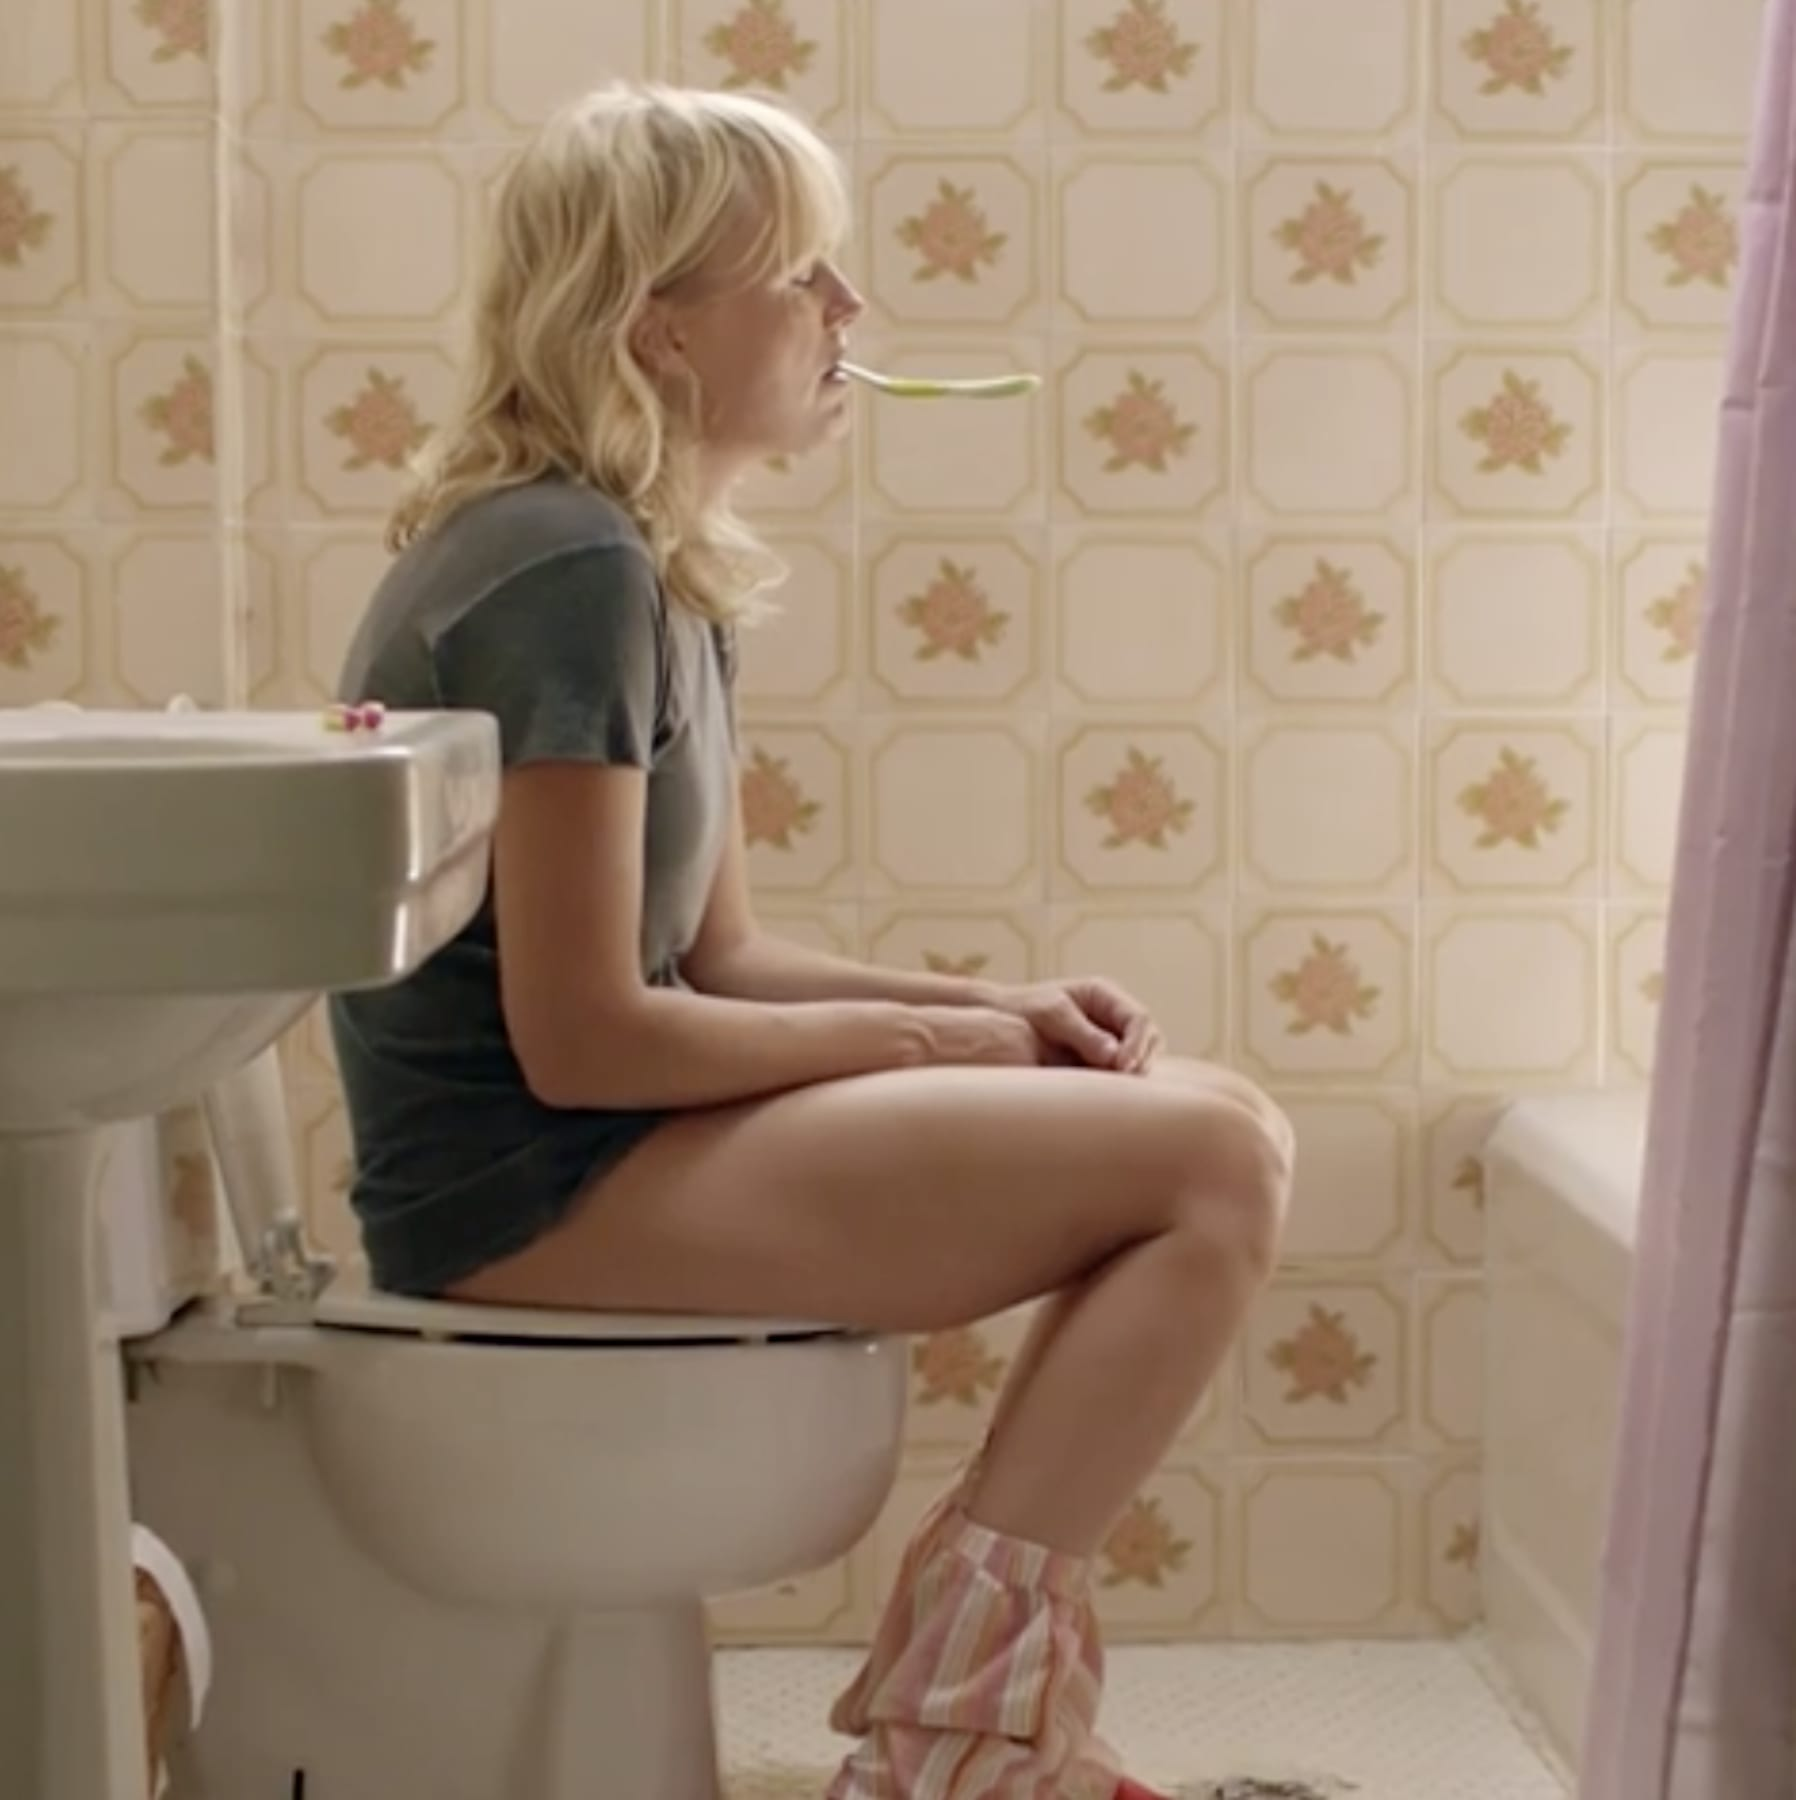 """Malin Åkerman in """"Chick Fight"""" peeing on the toilet with a toothbrush in her mouth"""